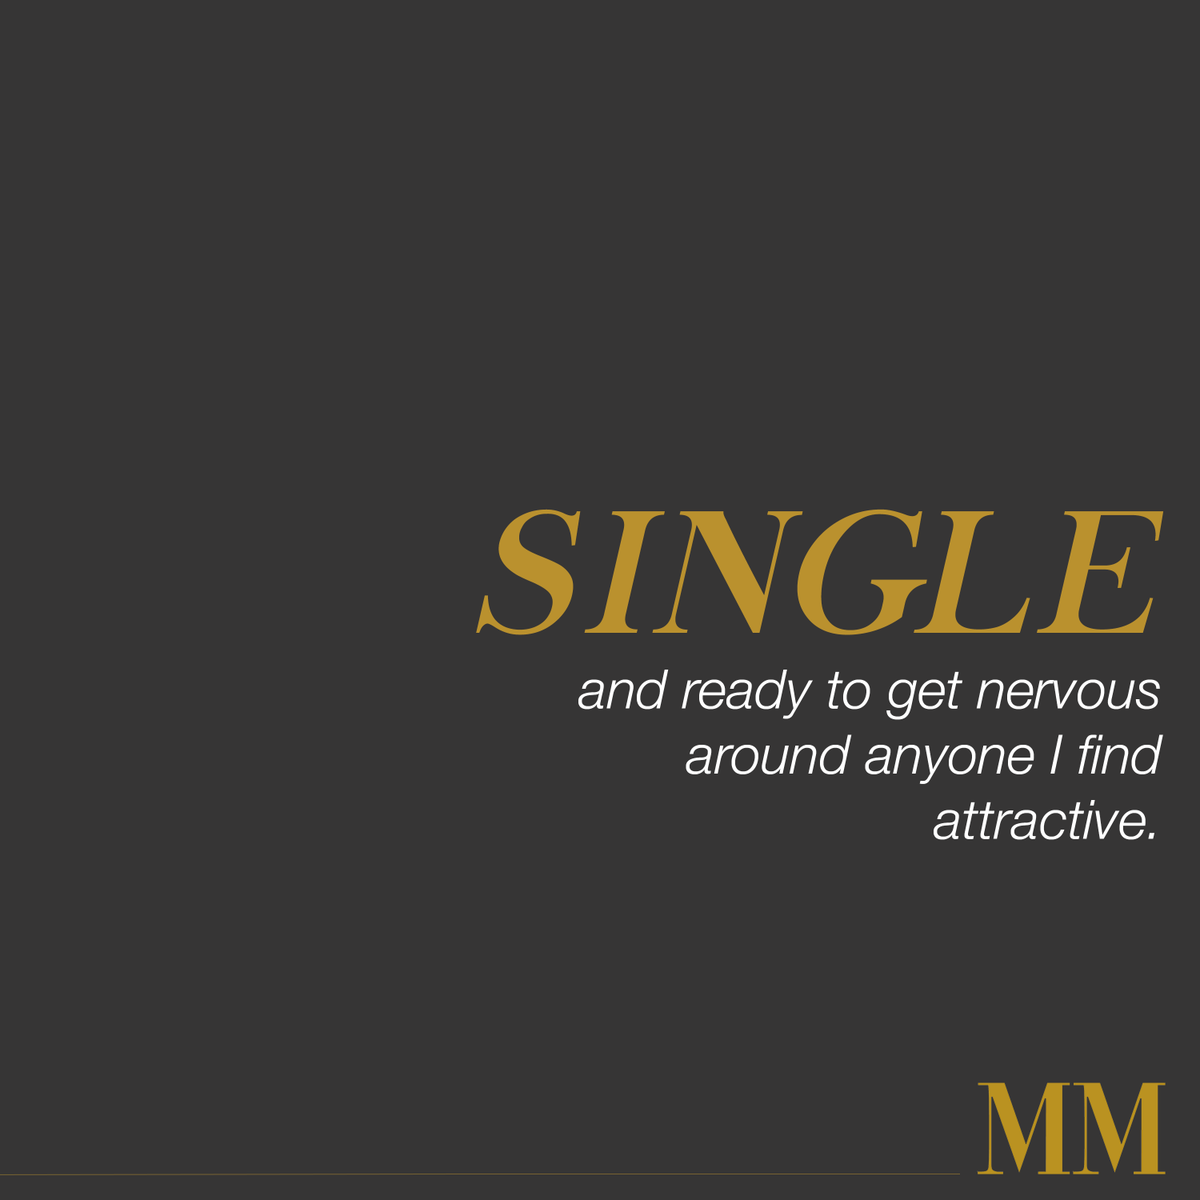 Midwest Matchmaking (@Midwest_Match) | Twitter